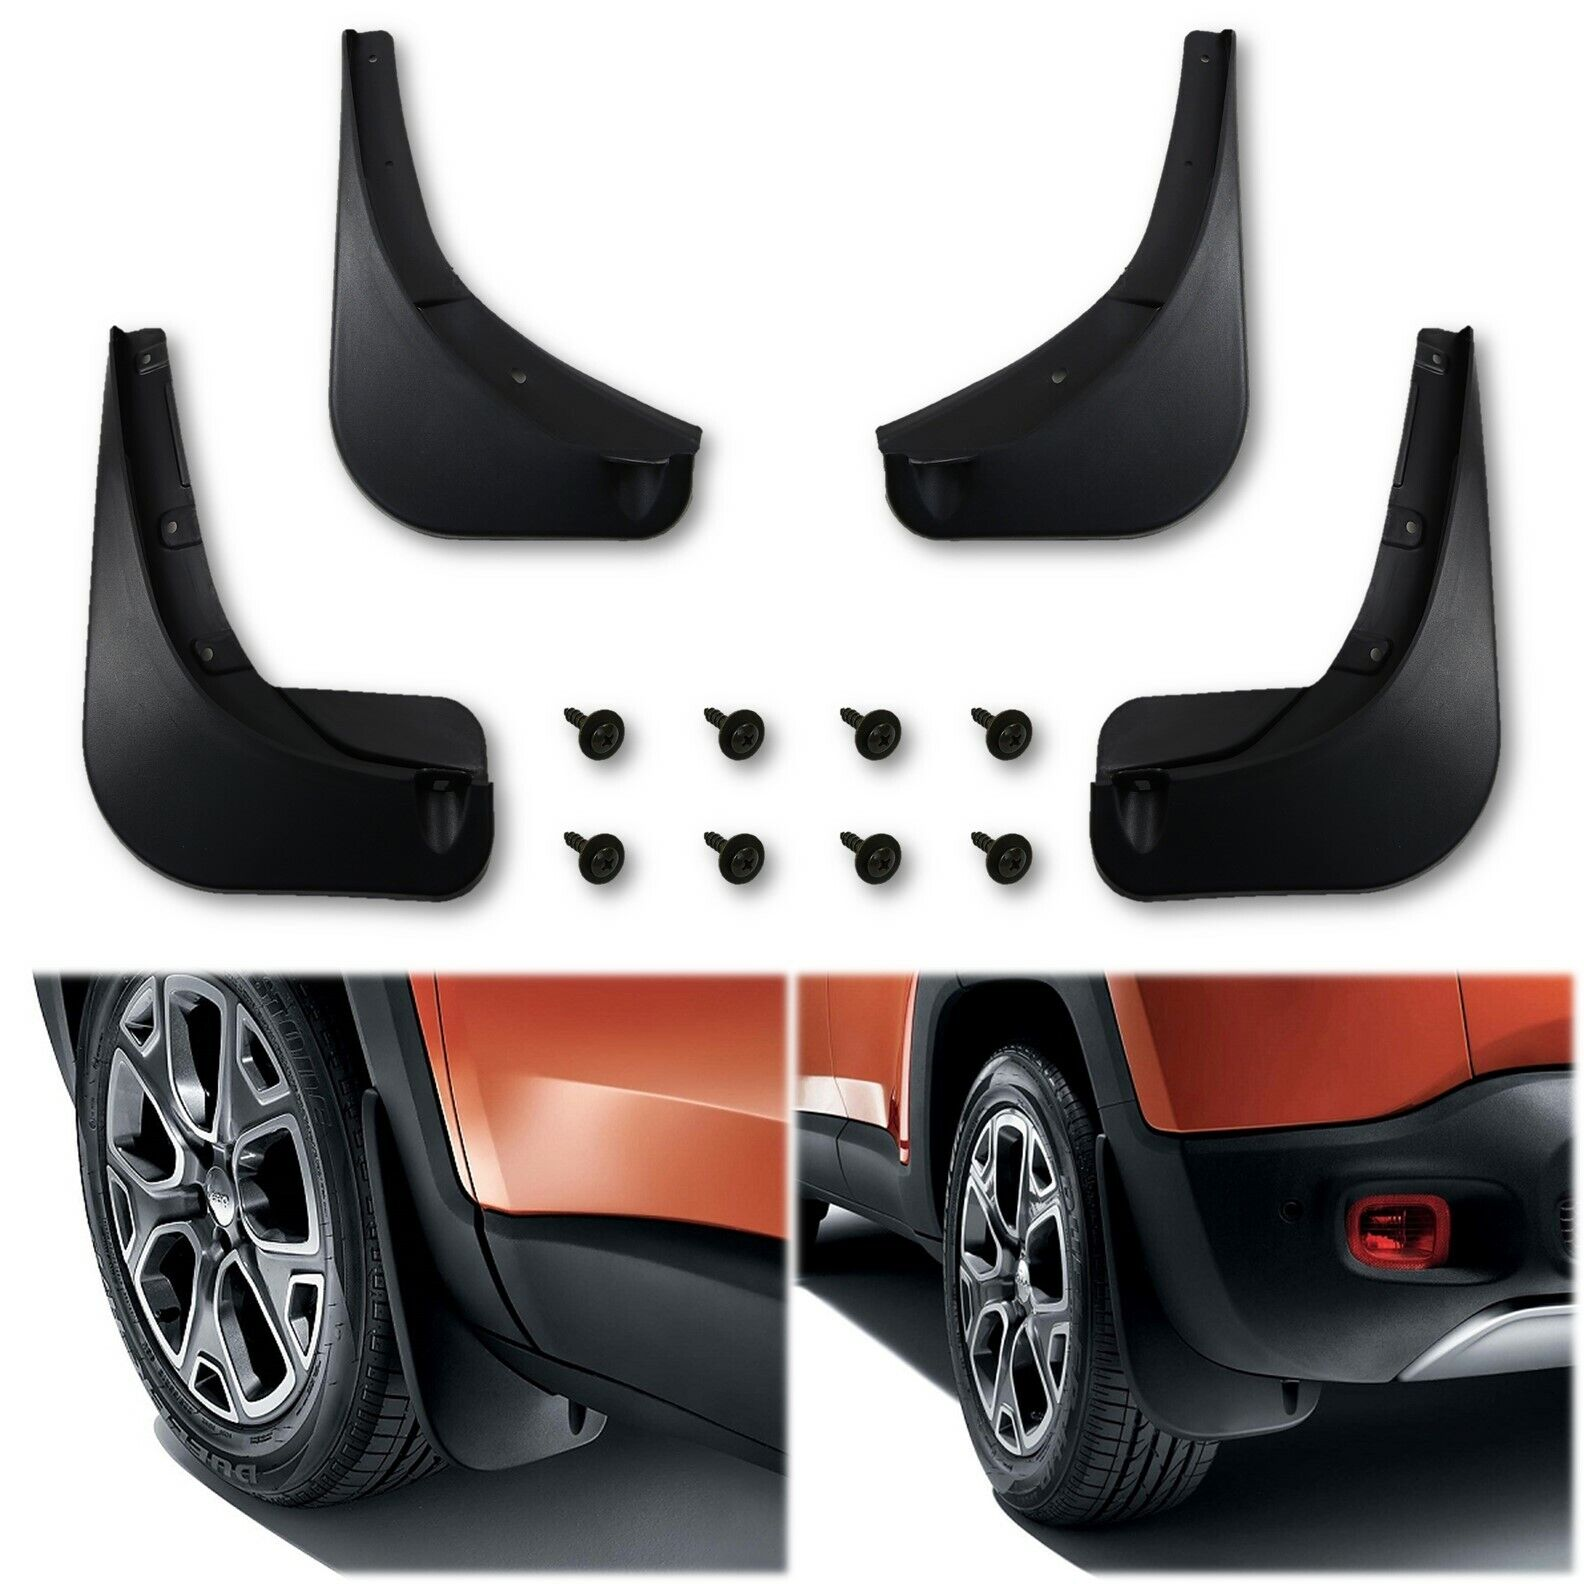 Front & Rear Black Molded Mud Flaps Splash Guards For 2015-2017 Jeep Renegade